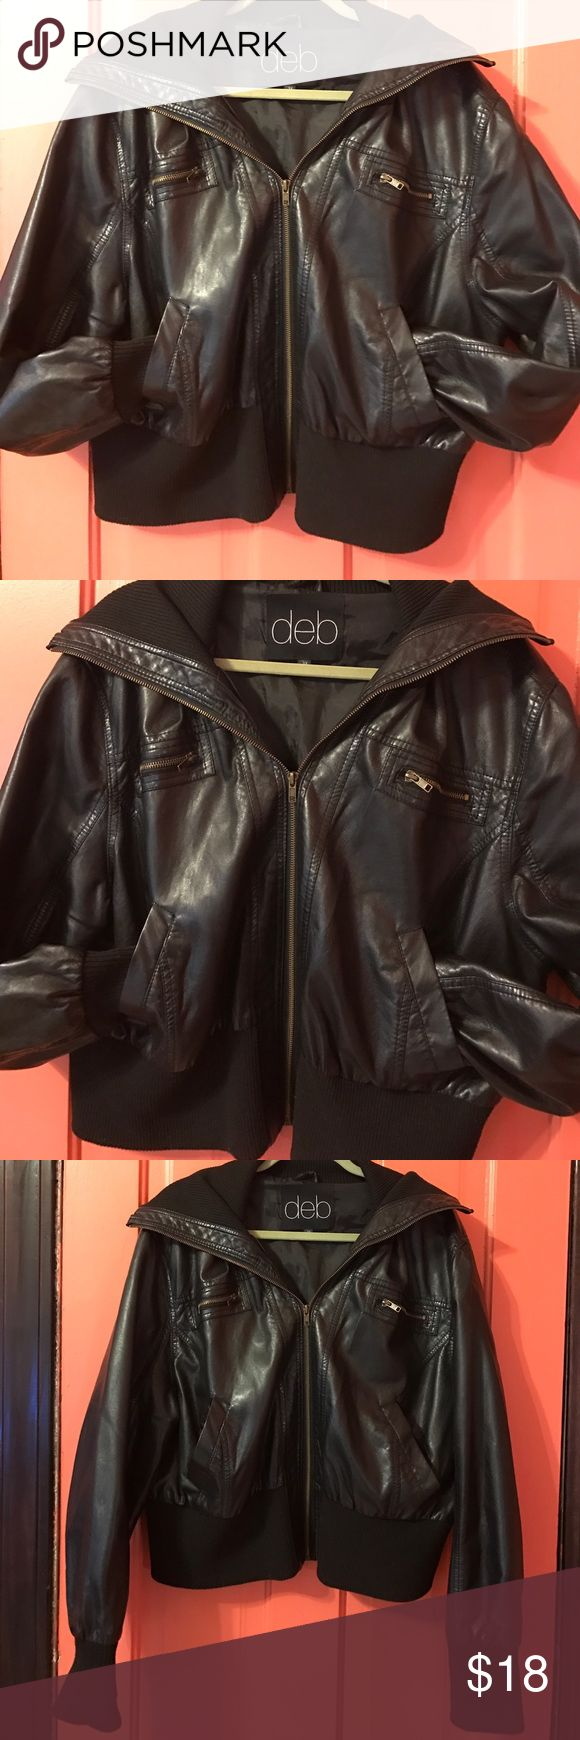 DEB Black faux leather jacket 3X DEB faux leather jacket. It is a short jacket, meant to sit about on your waist. Perfect for fall. Has pockets and zipper detailing. The sleeves have a wide black thick material. There is a black thick stretchy band along the bottom, do it is easy to stretch and zip around the waist. Size 3X. In great condition. Deb Jackets & Coats